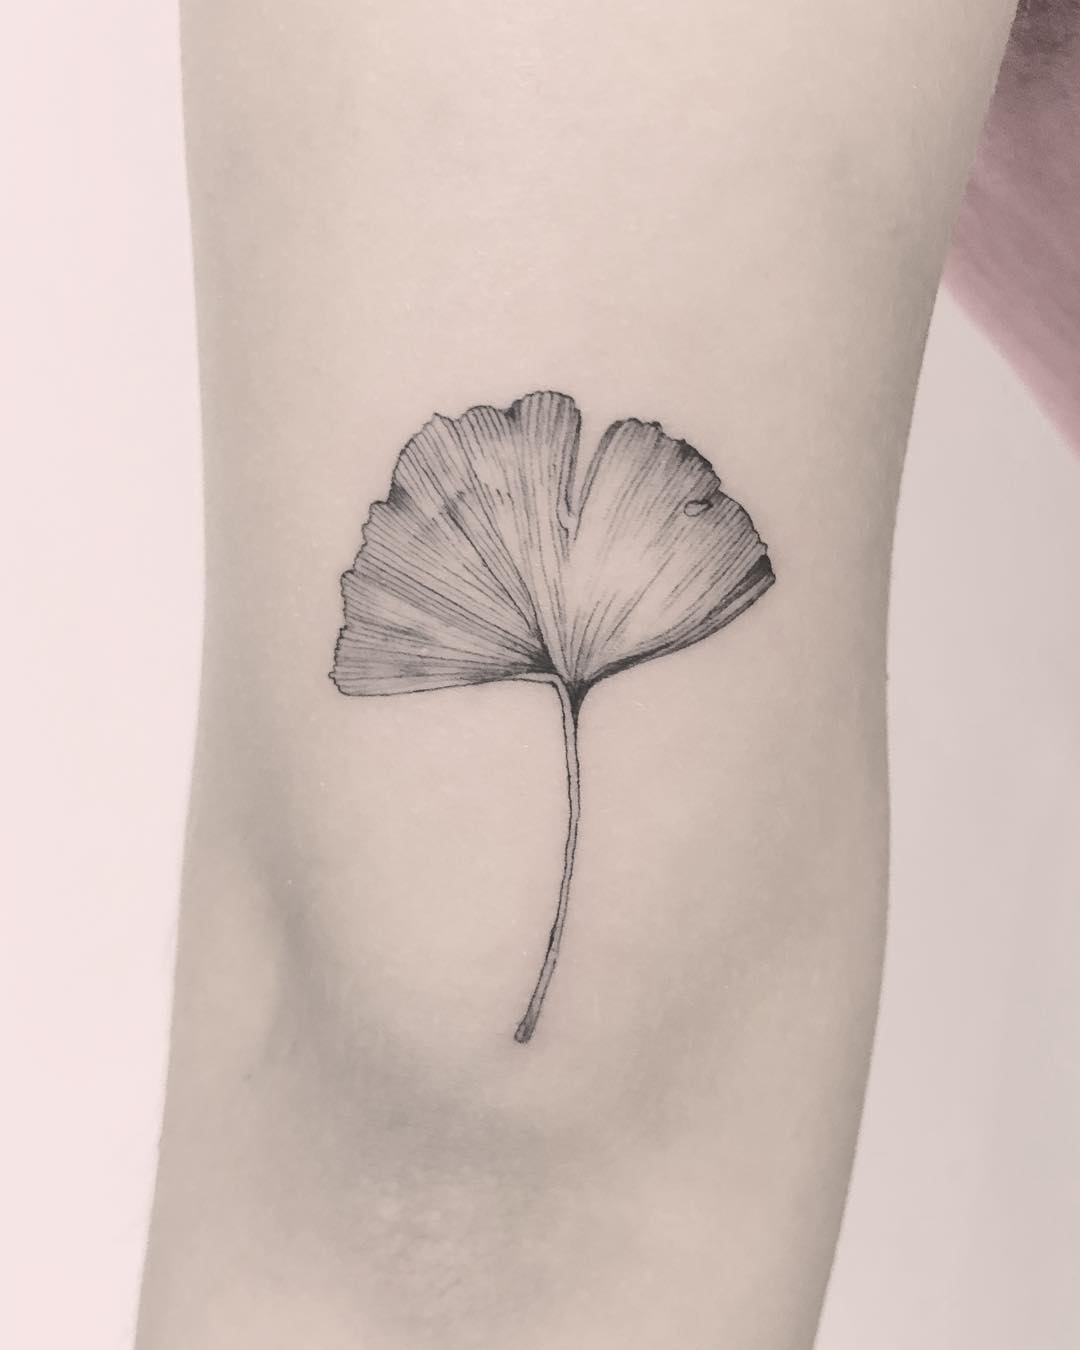 Gingko biloba tattoo by Annelie Fransson